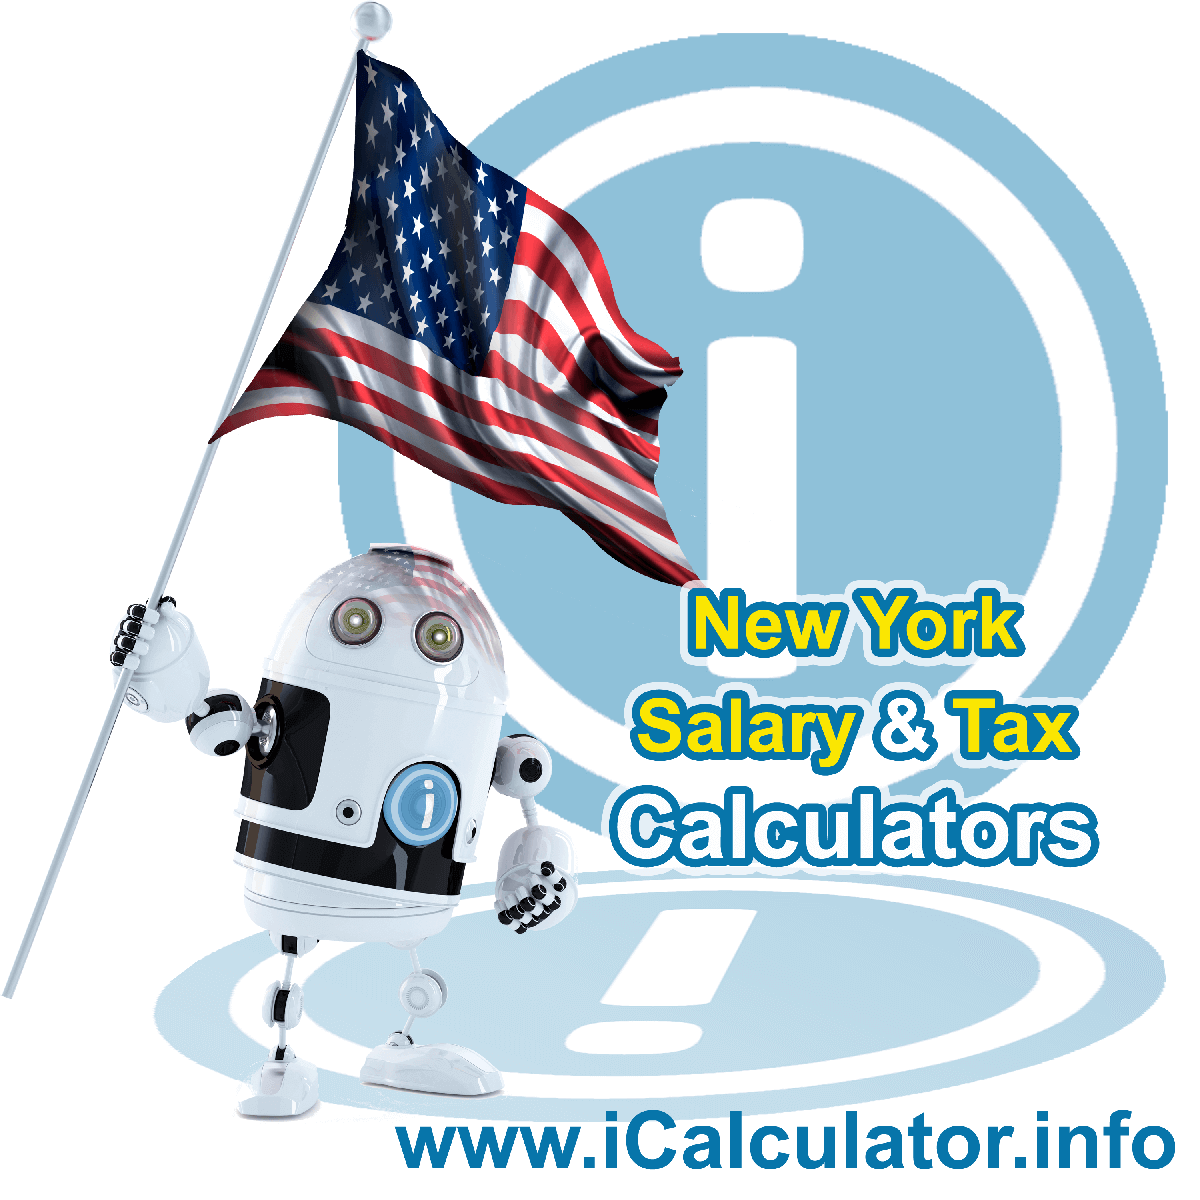 New York Salary Calculator 2020 | iCalculator | The New York Salary Calculator allows you to quickly calculate your salary after tax including New York State Tax, Federal State Tax, Medicare Deductions, Social Security, Capital Gains and other income tax and salary deductions complete with supporting New York state tax tables